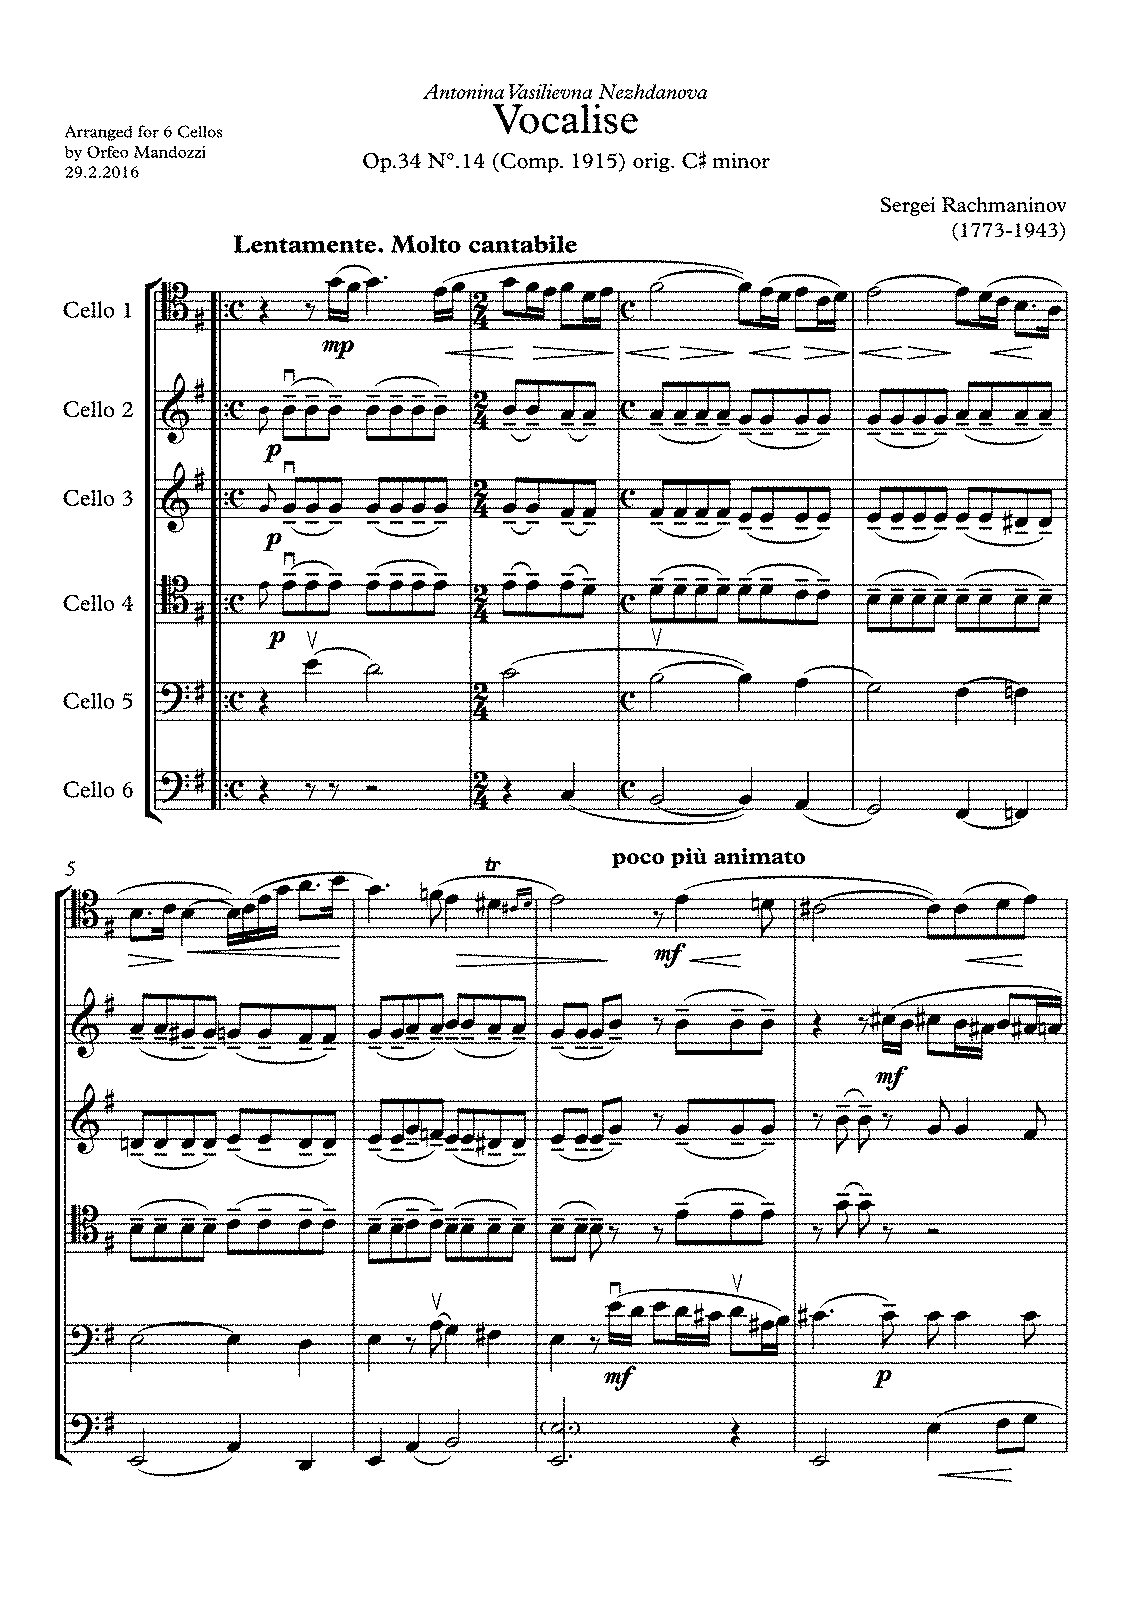 PMLP17852-Rachmaninov Vocalise Mandozzi 6 Celli - Partitur.pdf